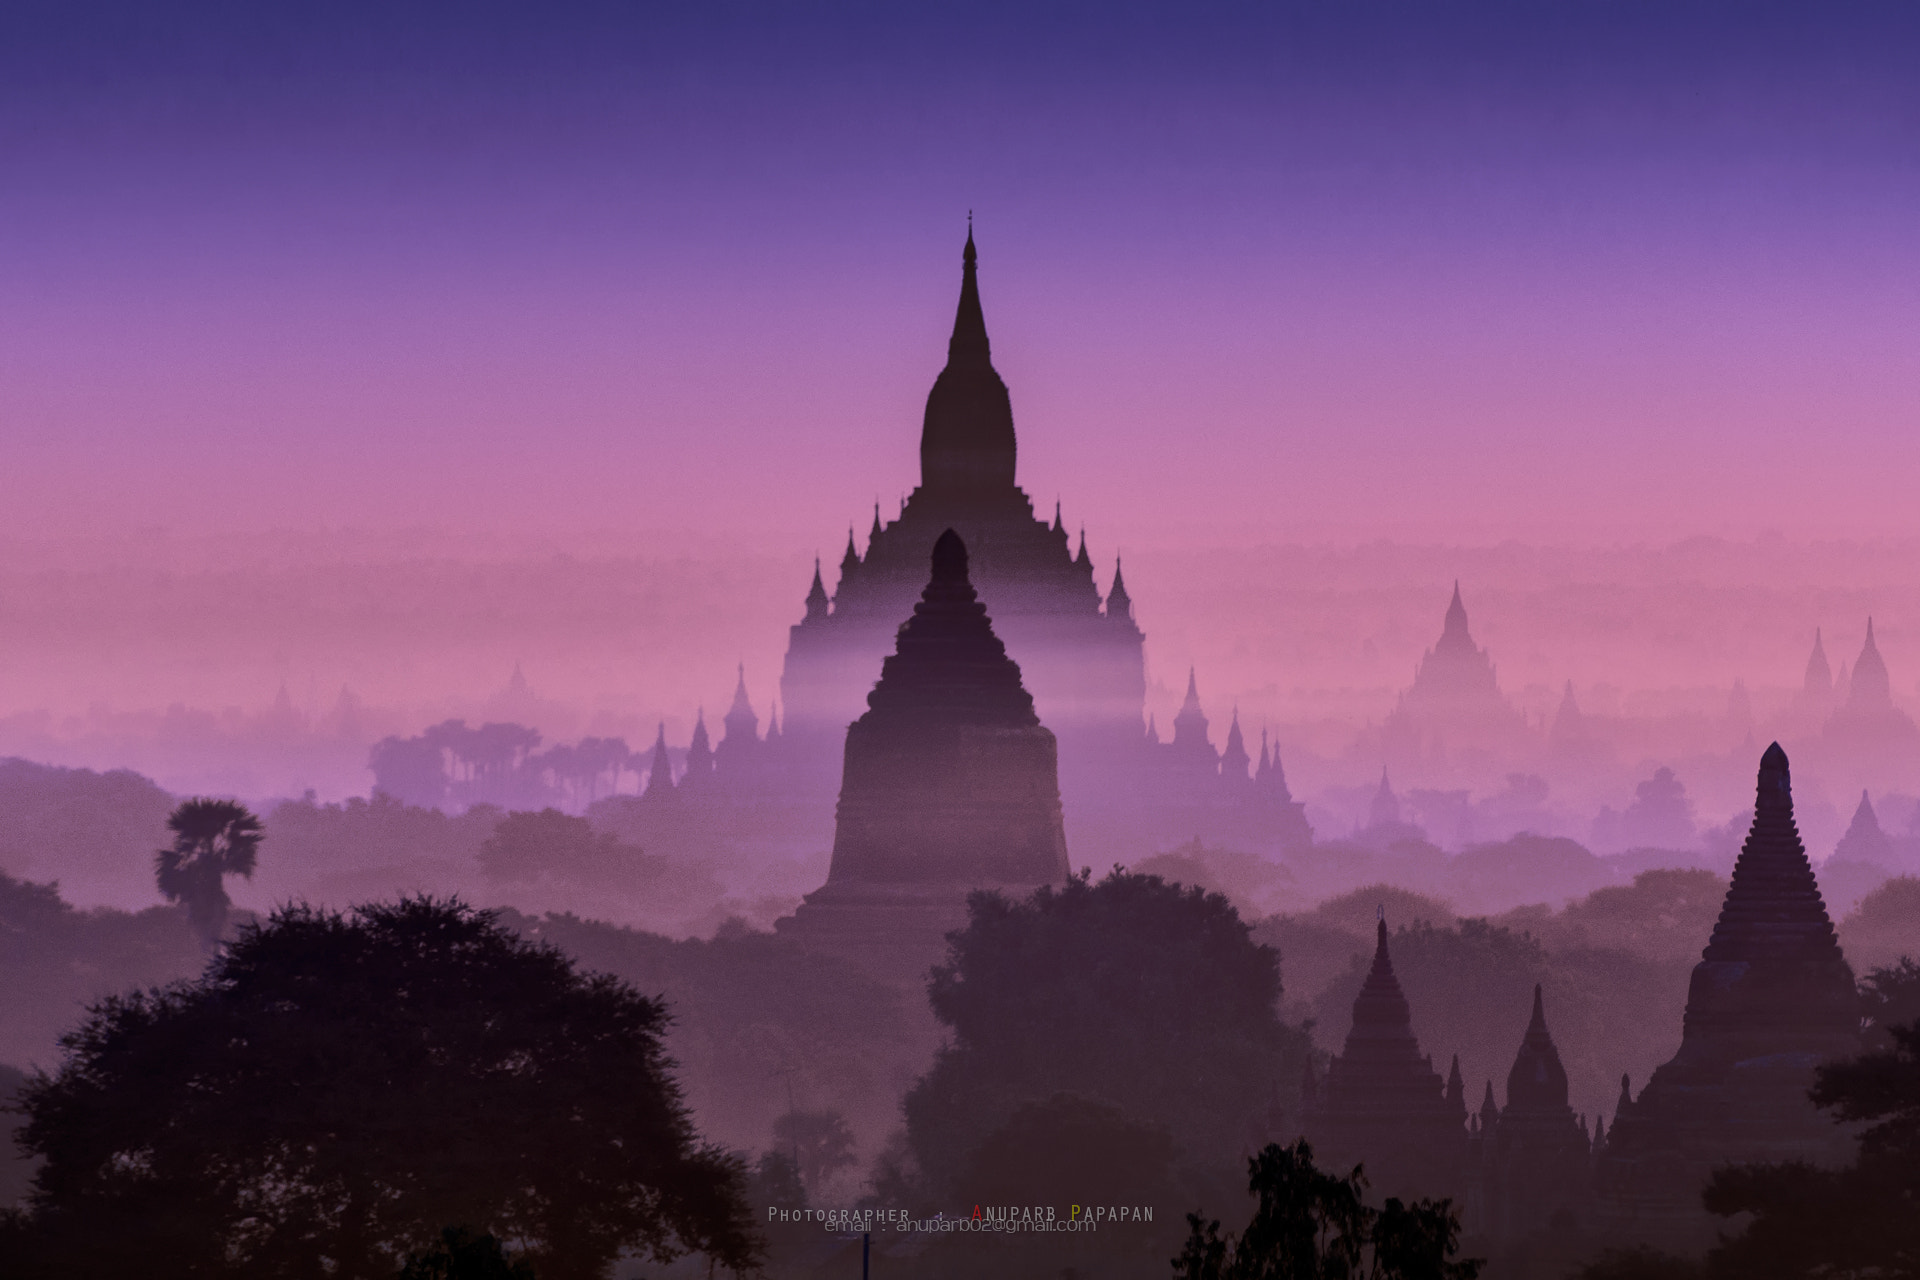 Photograph Bagan in Blue Tone by Anuparb Papapan on 500px